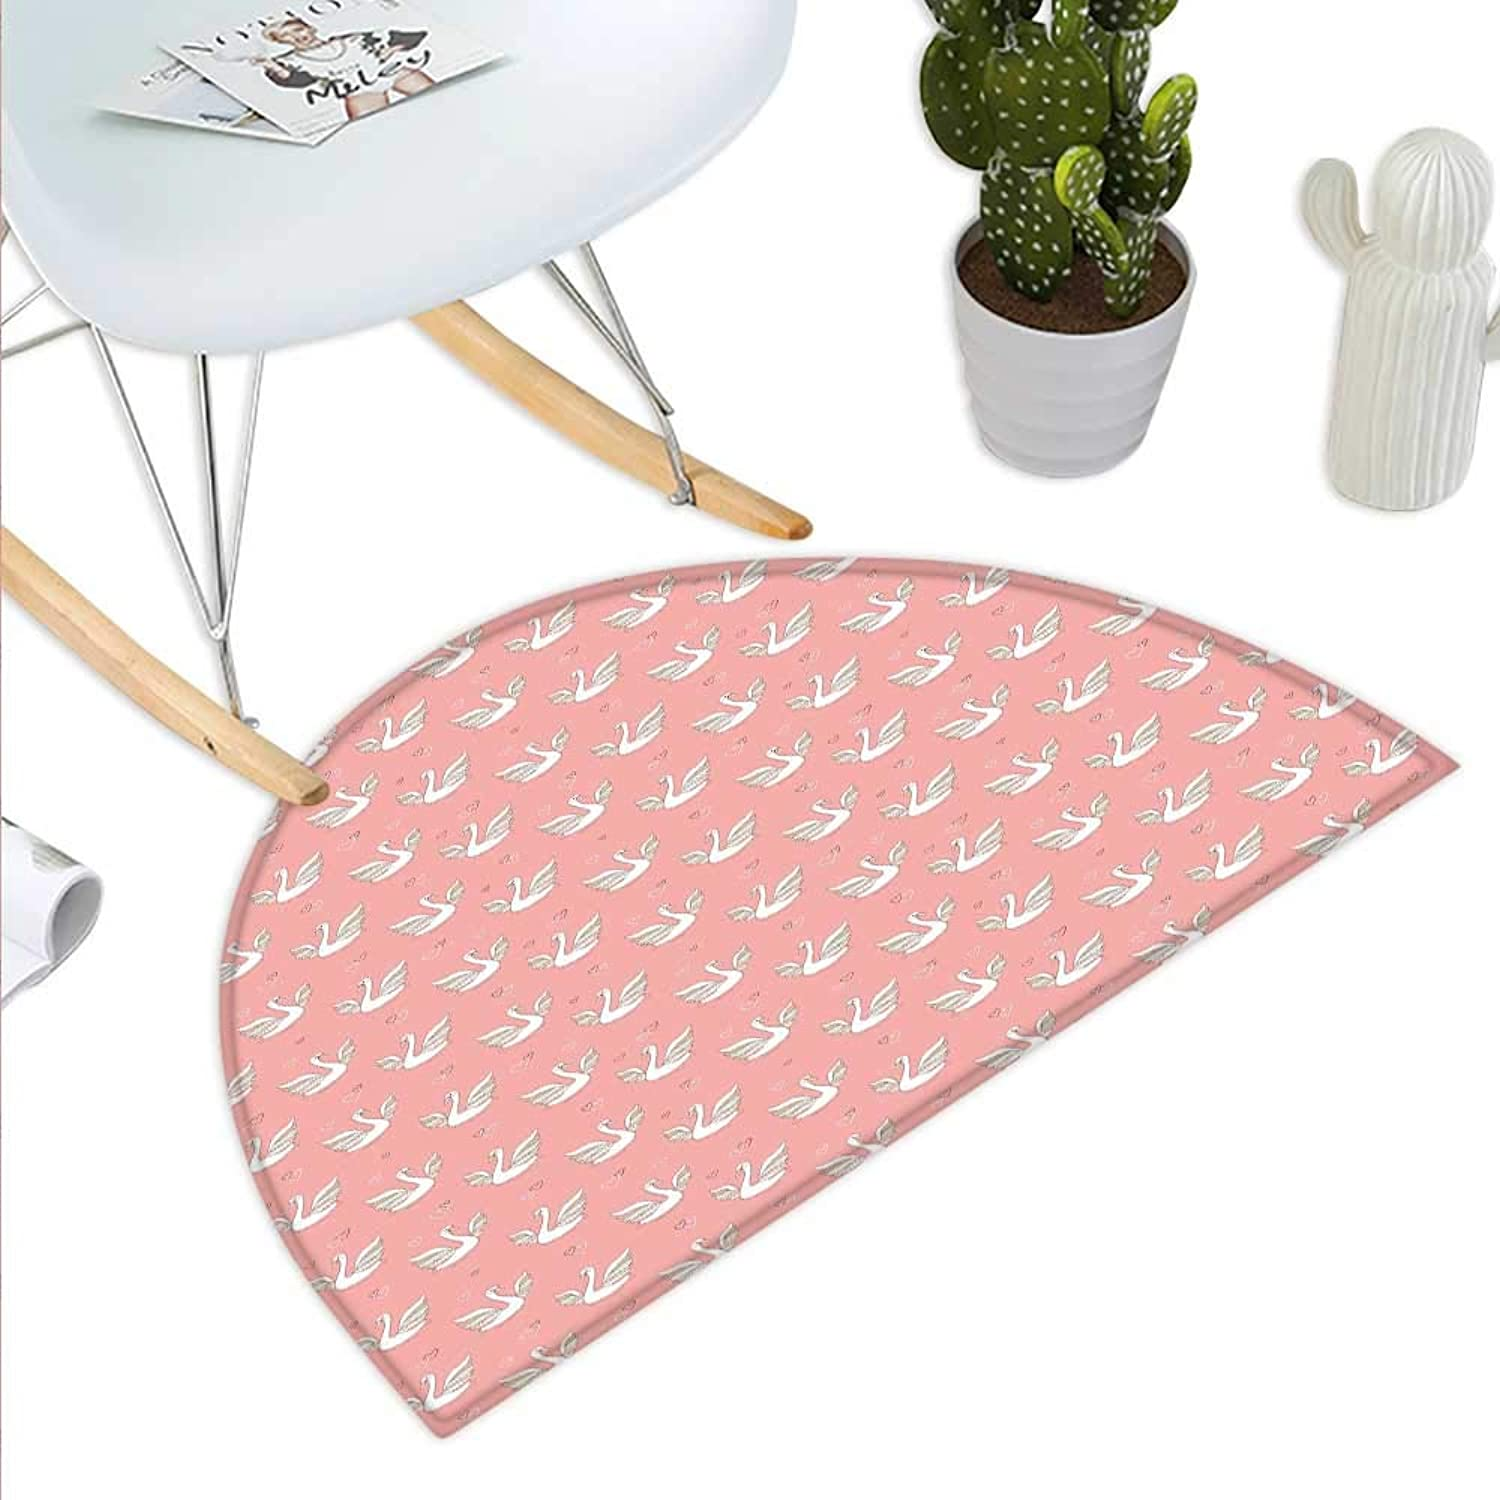 Swan Semicircle Doormat Hand Drawn Style White Birds on Coral Backdrop with Patterned Wings and Little Hearts Halfmoon doormats H 39.3  xD 59  Multicolor